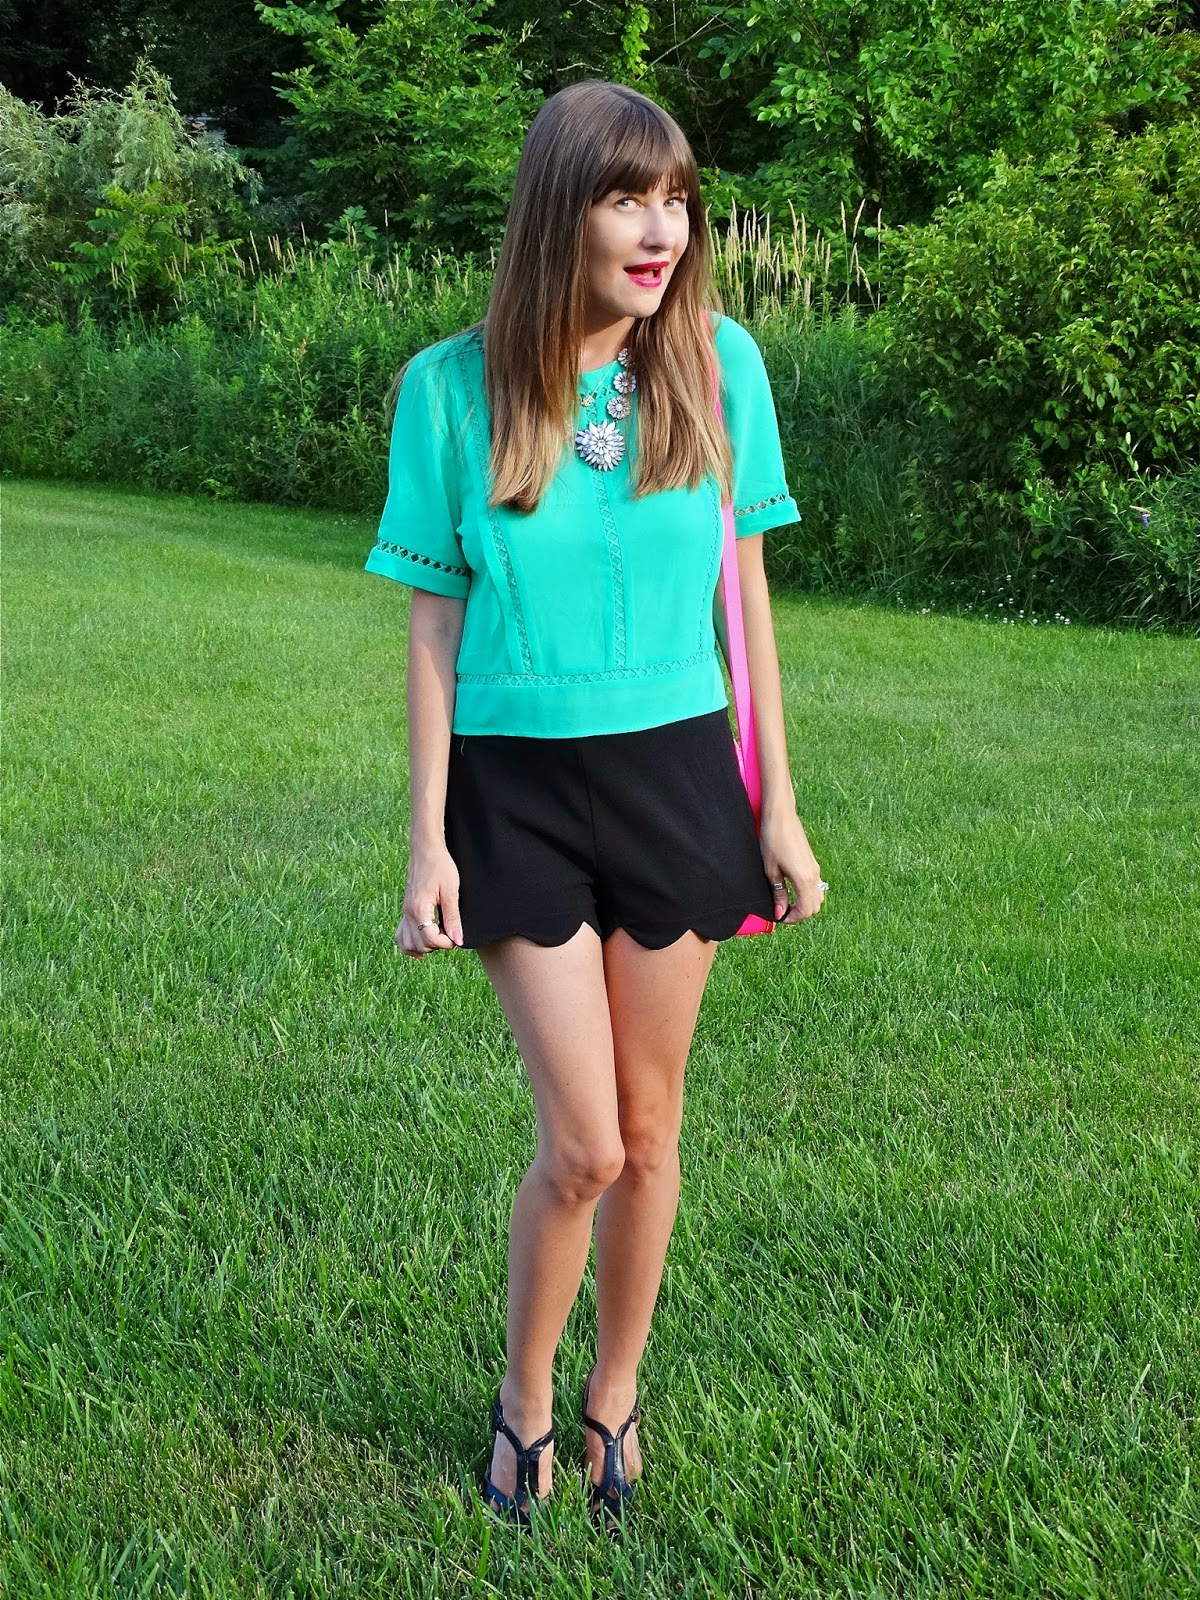 What to wear with scalloped shorts, outfit ideas | House Of Jeffers | www.houseofjeffers.com